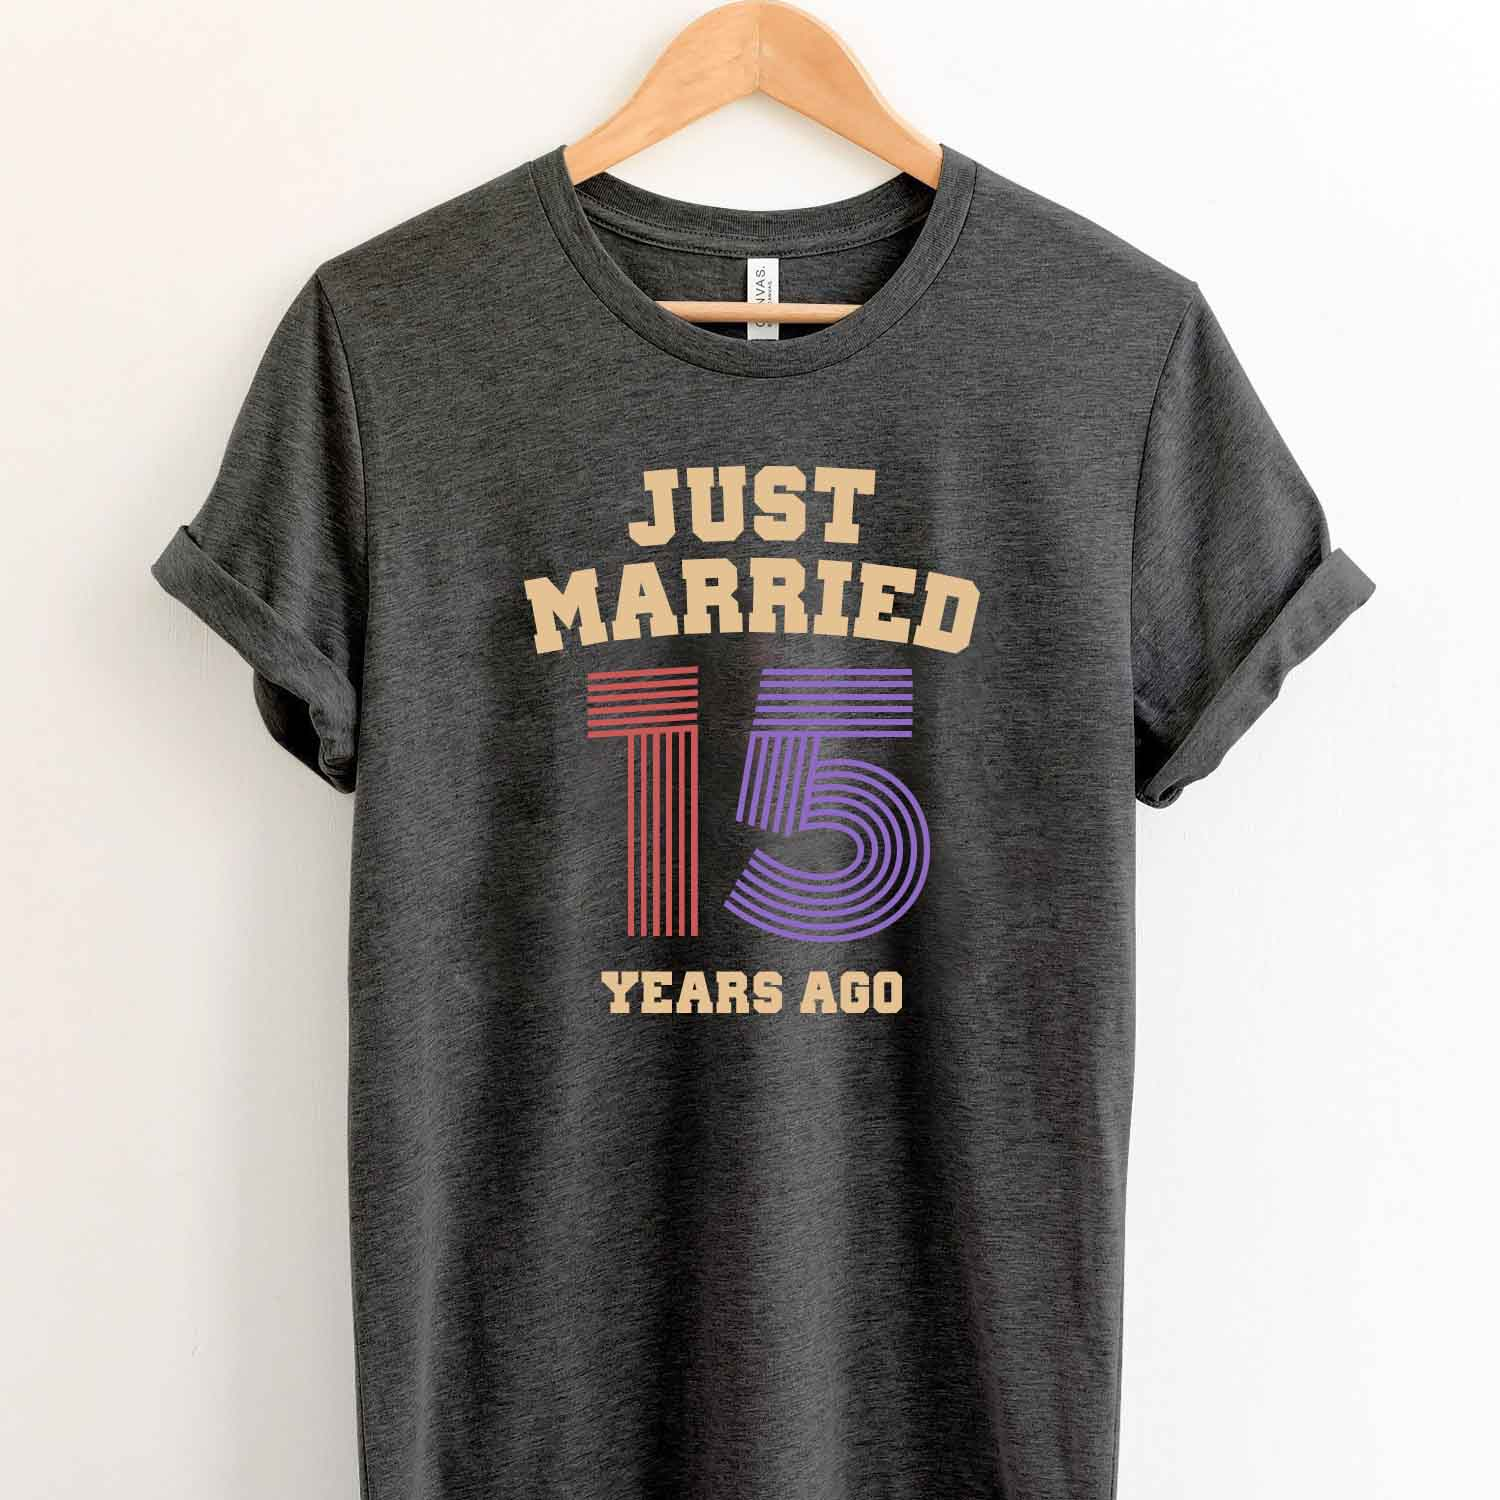 Just Married 15 Years Ago 2004 T Shirt Perfect Sweet Romantic Gift for Couple Husband Wife